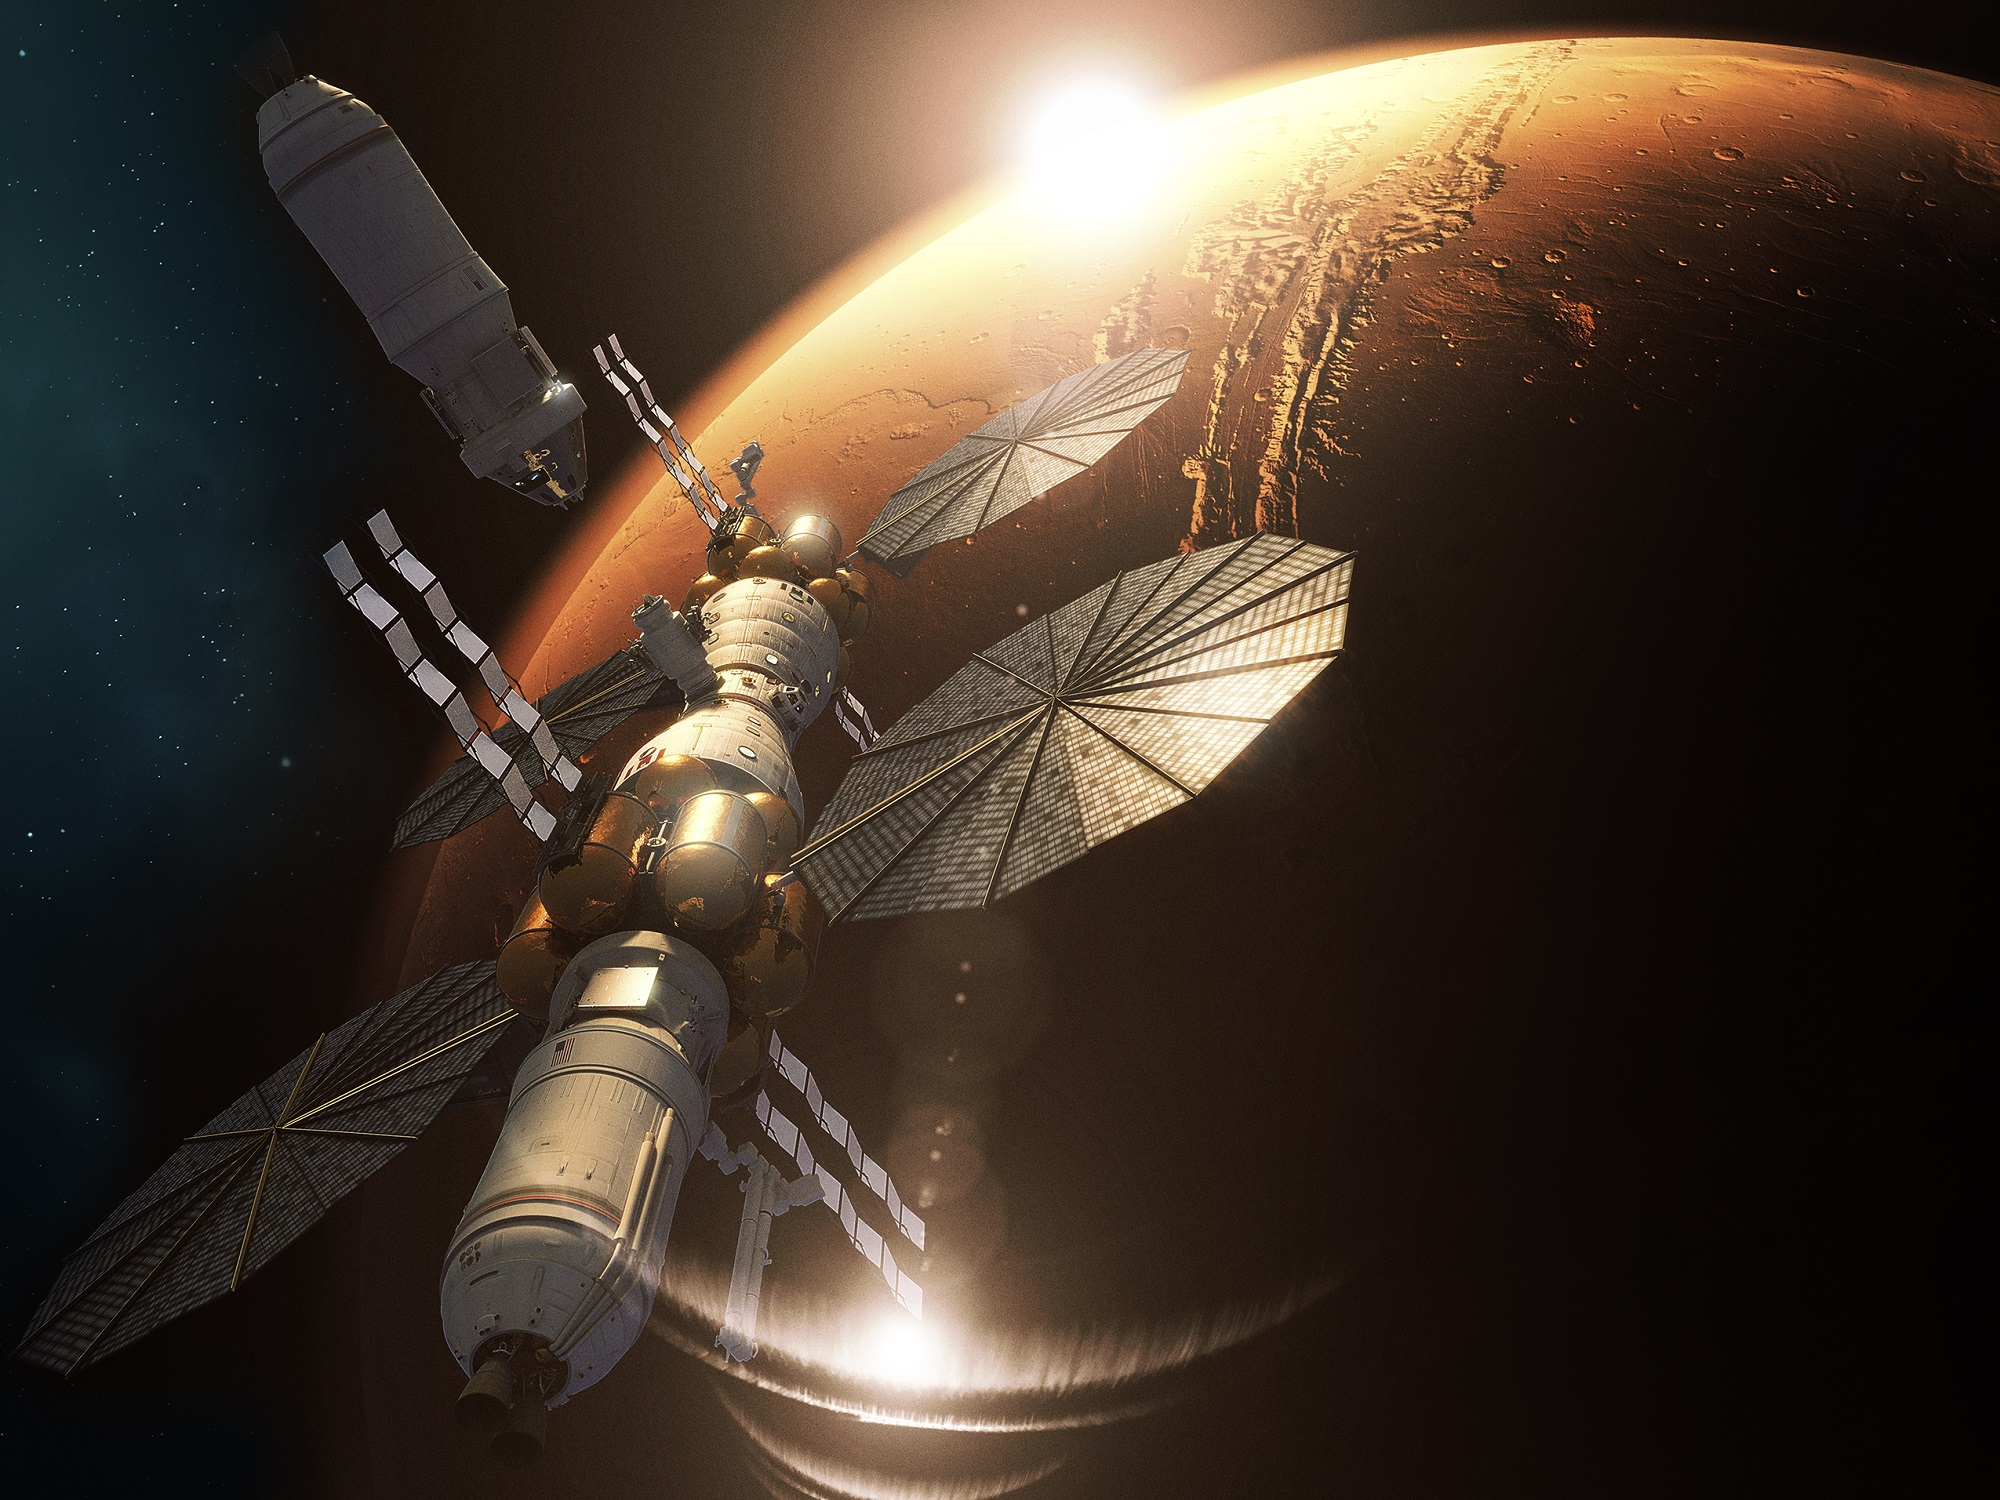 La Mars Base Camp de Lockheed Martin sigue adelante